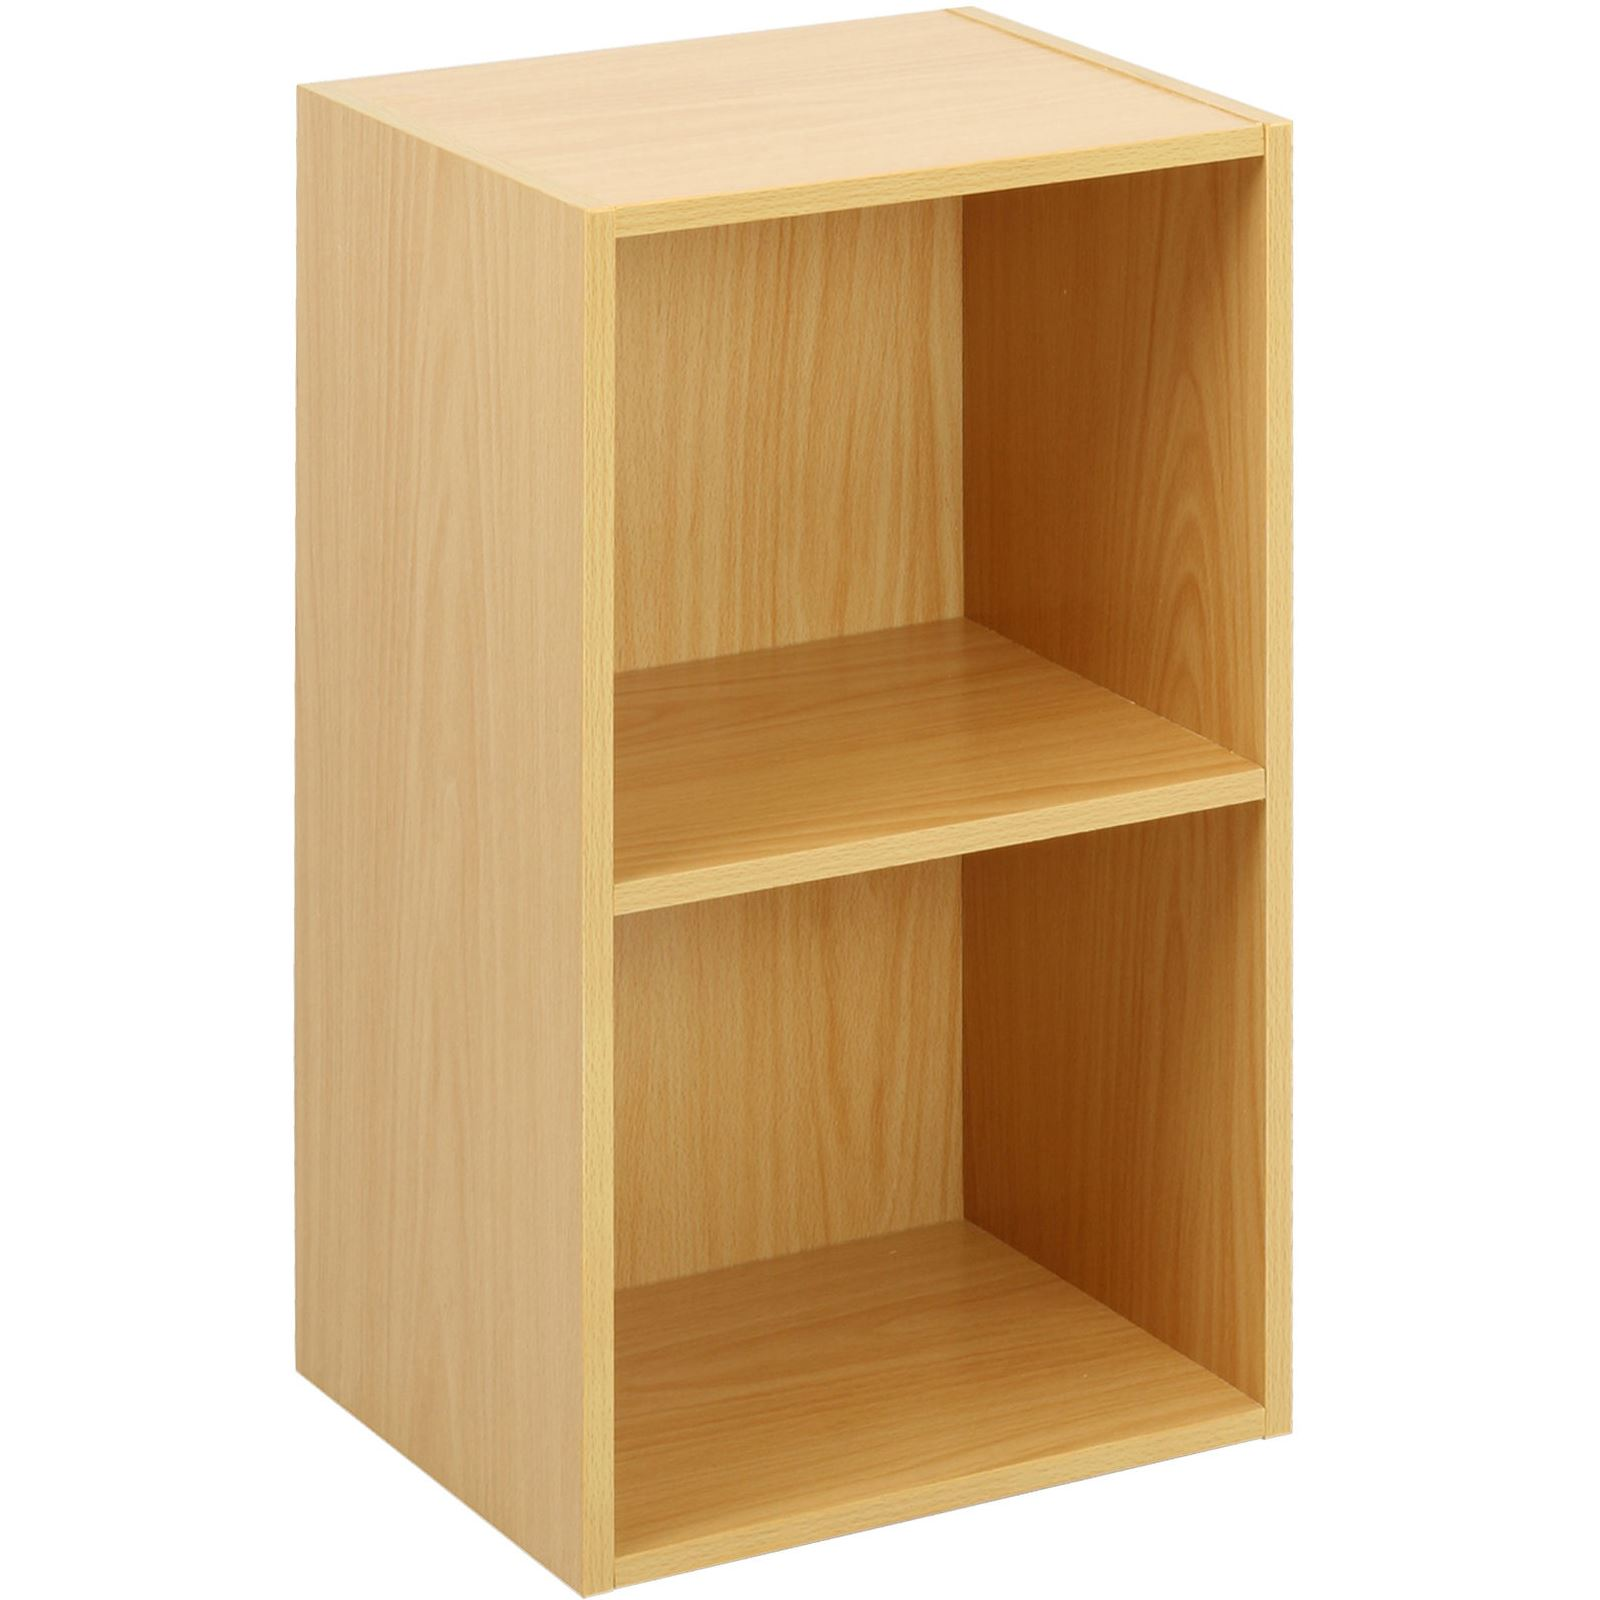 Wooden-Storage-Unit-Cube-2-3-4-Tier-Strong-Bookcase-Shelving-Home-Office-Display thumbnail 7